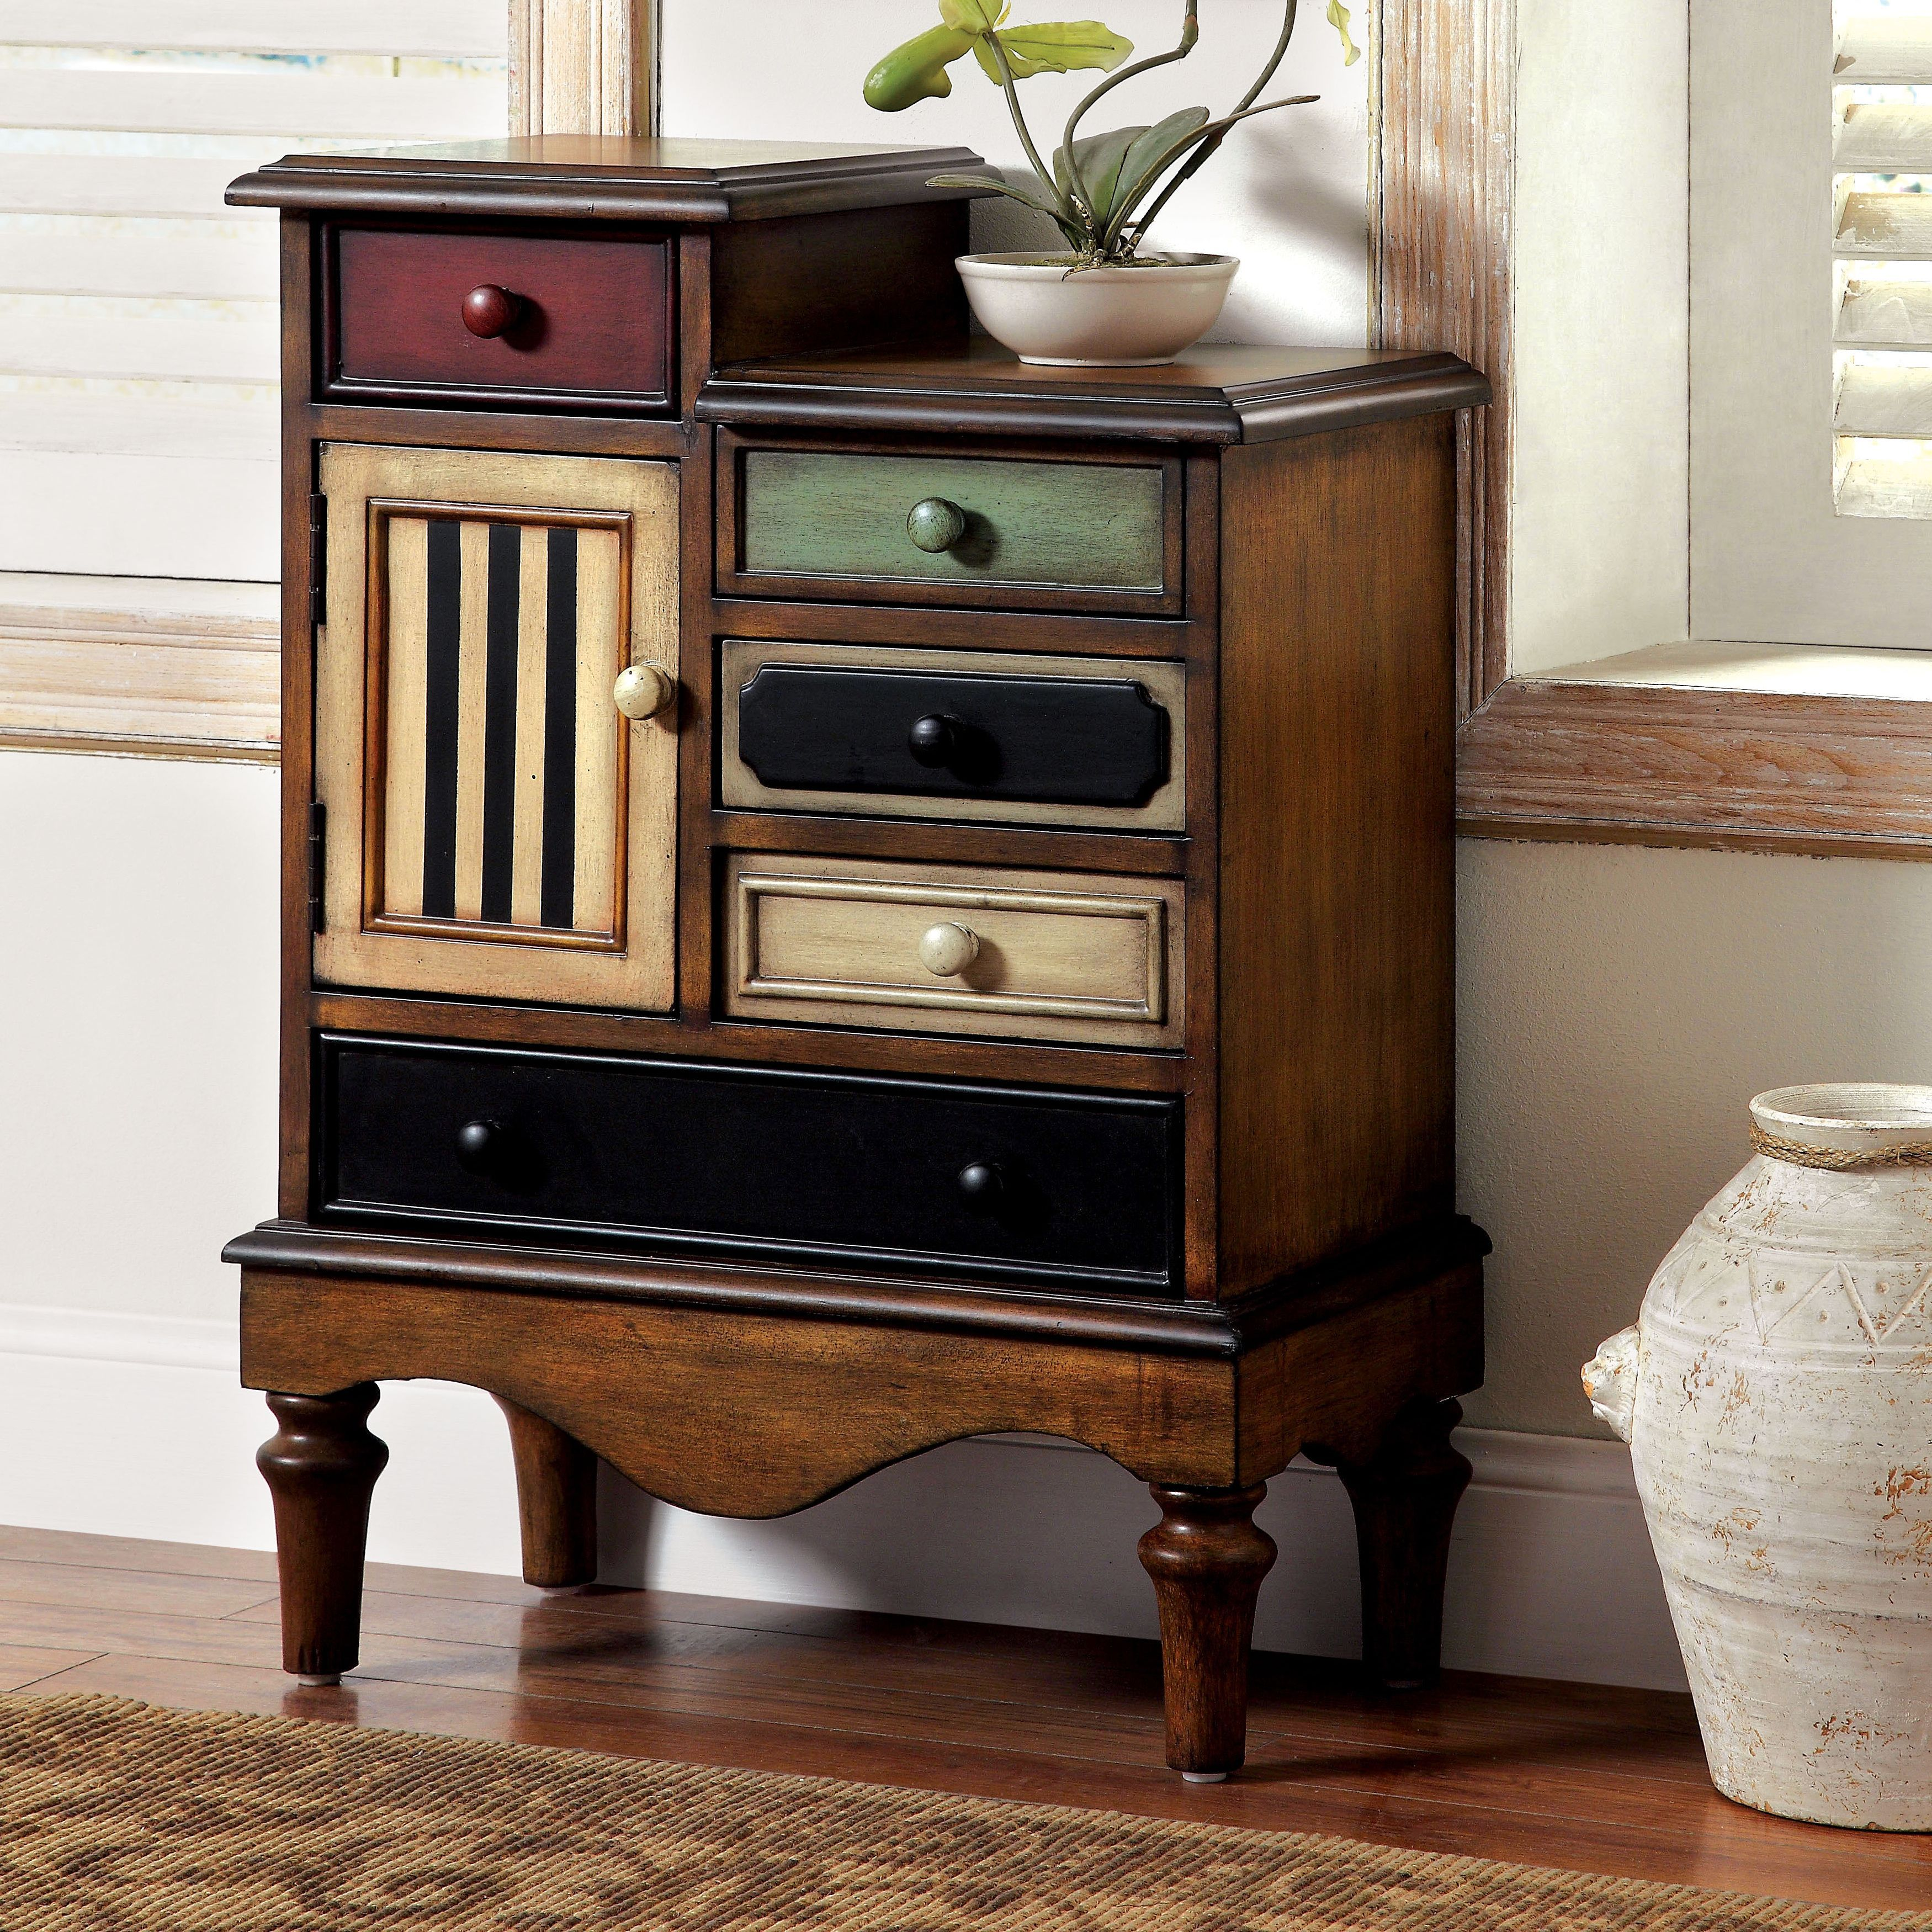 Vintage Cheap Furniture: Bedding, Furniture, Electronics, Jewelry